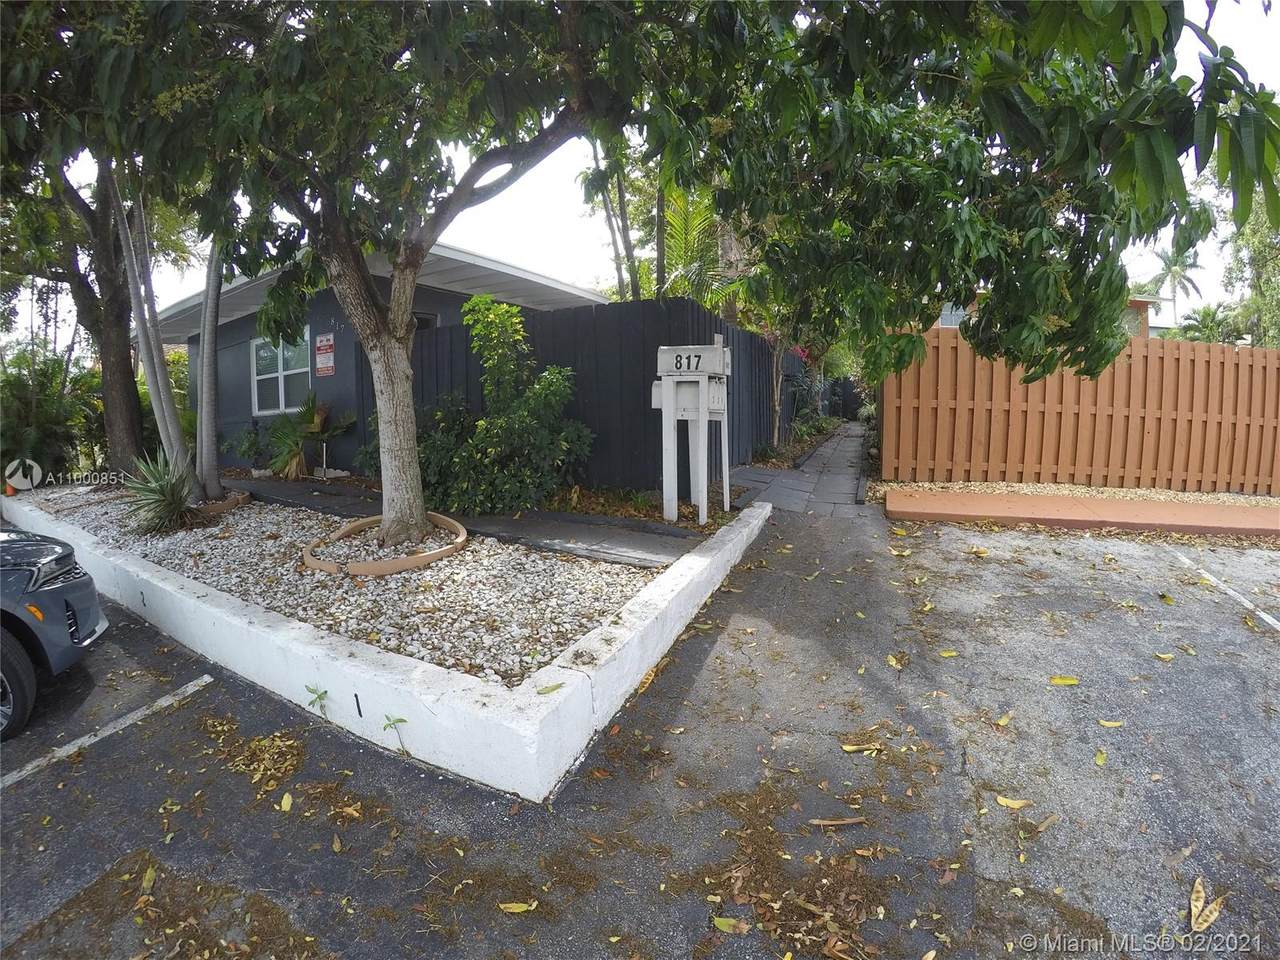 817 19th Ave - Photo 1